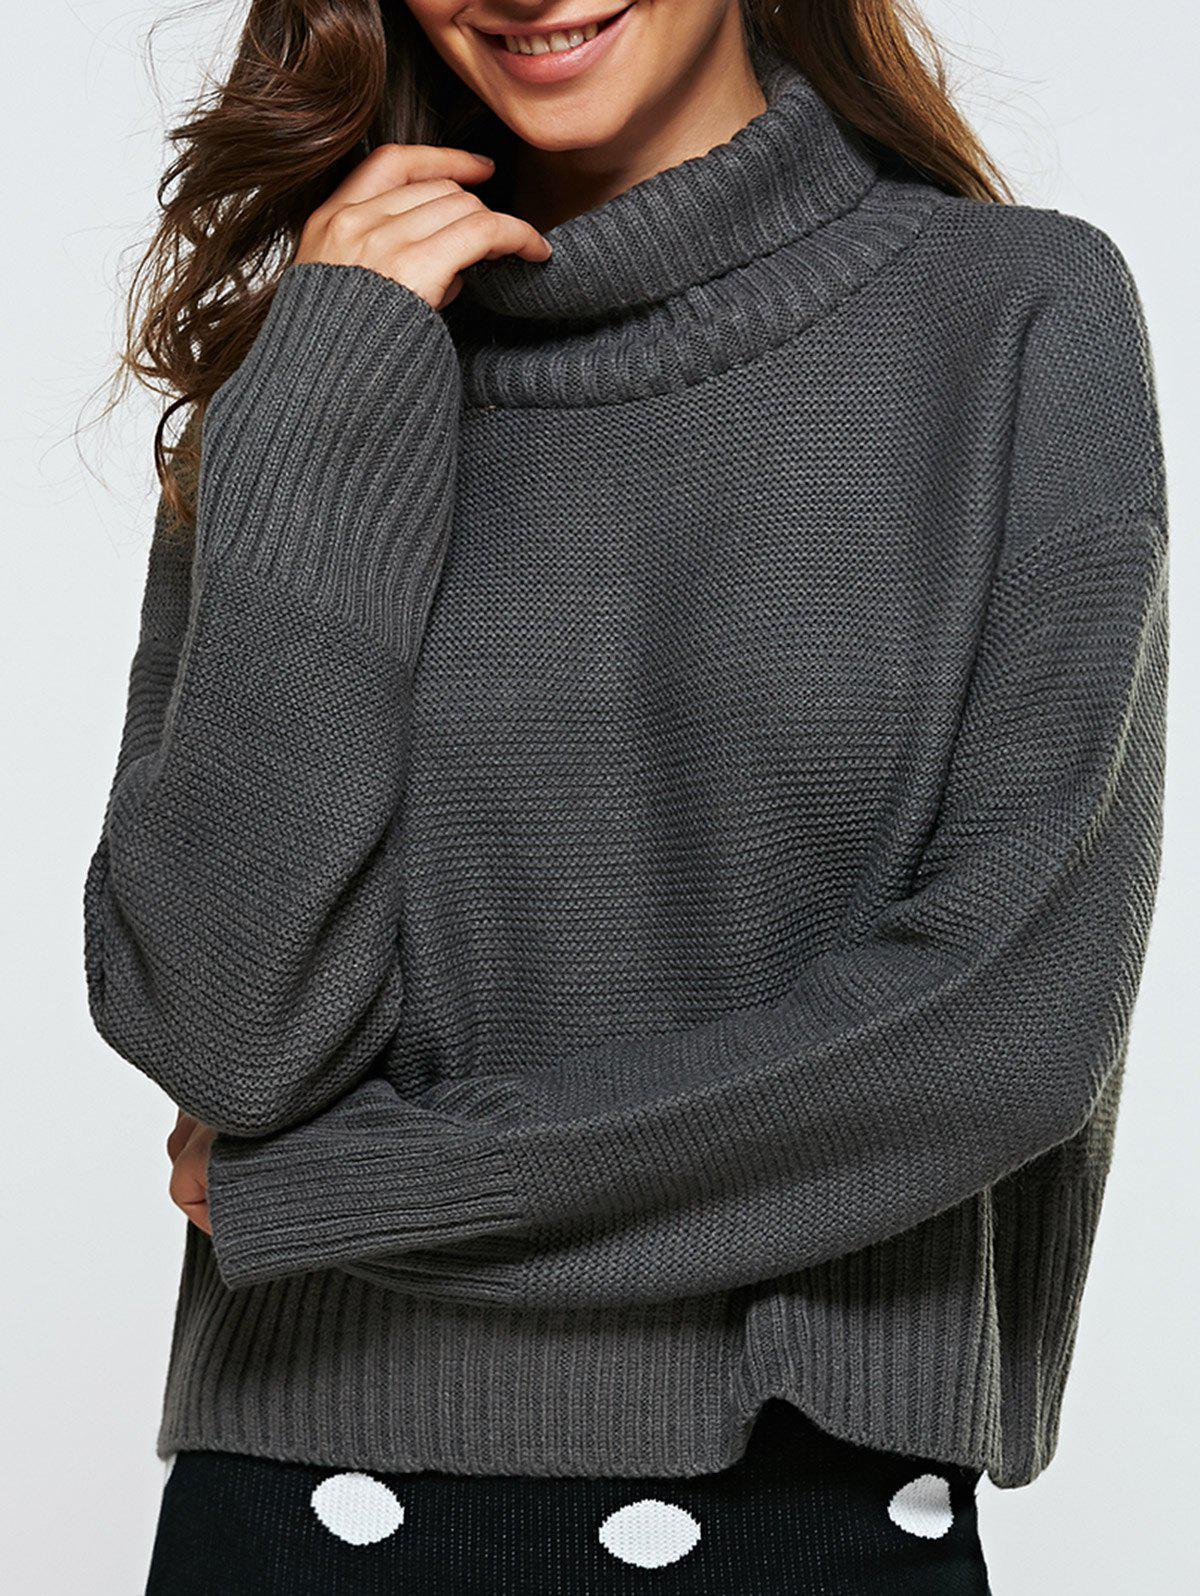 Turtle Neck Ribbed Loose-Fitting Sweater